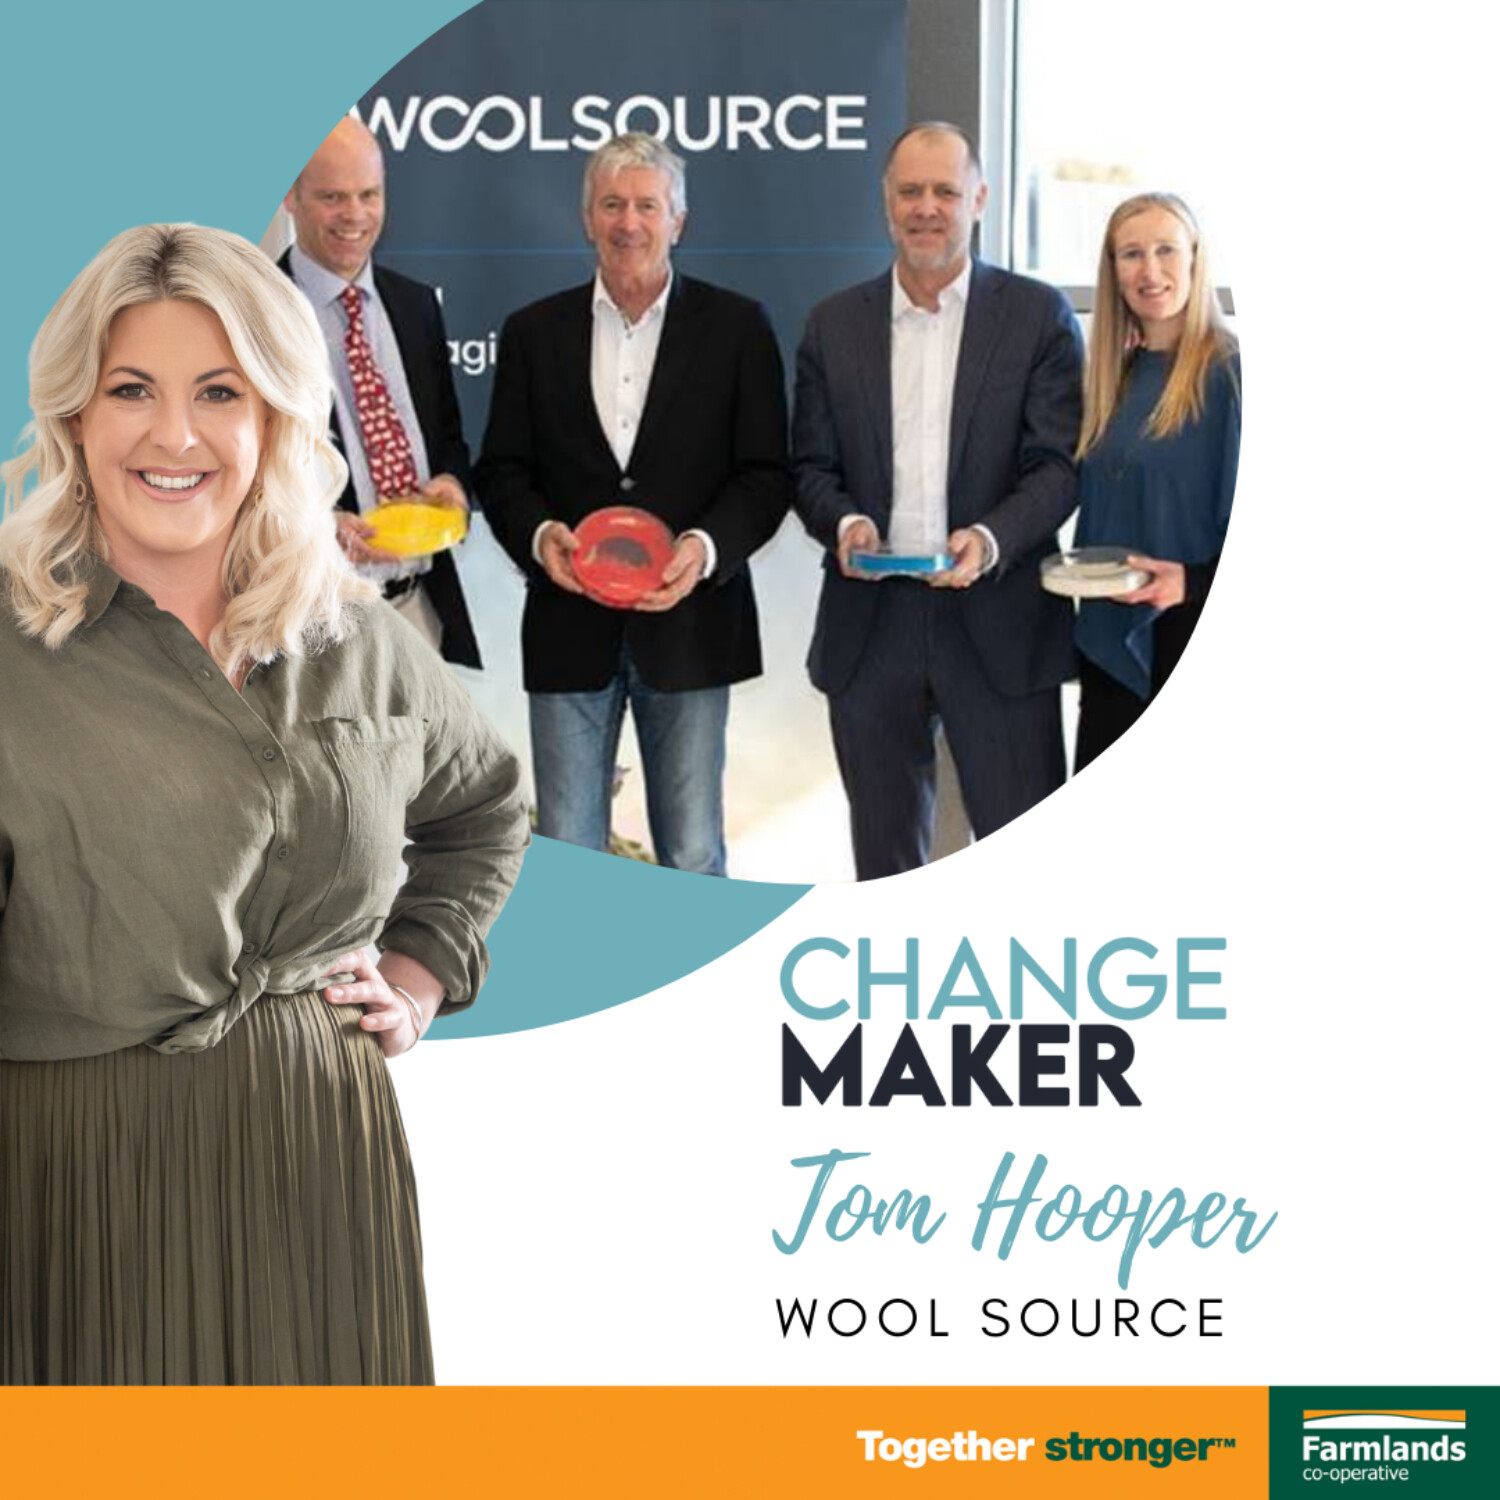 Keratin particles in wool are a game changer for farm-gate prices I Tom Hooper, Wool Source